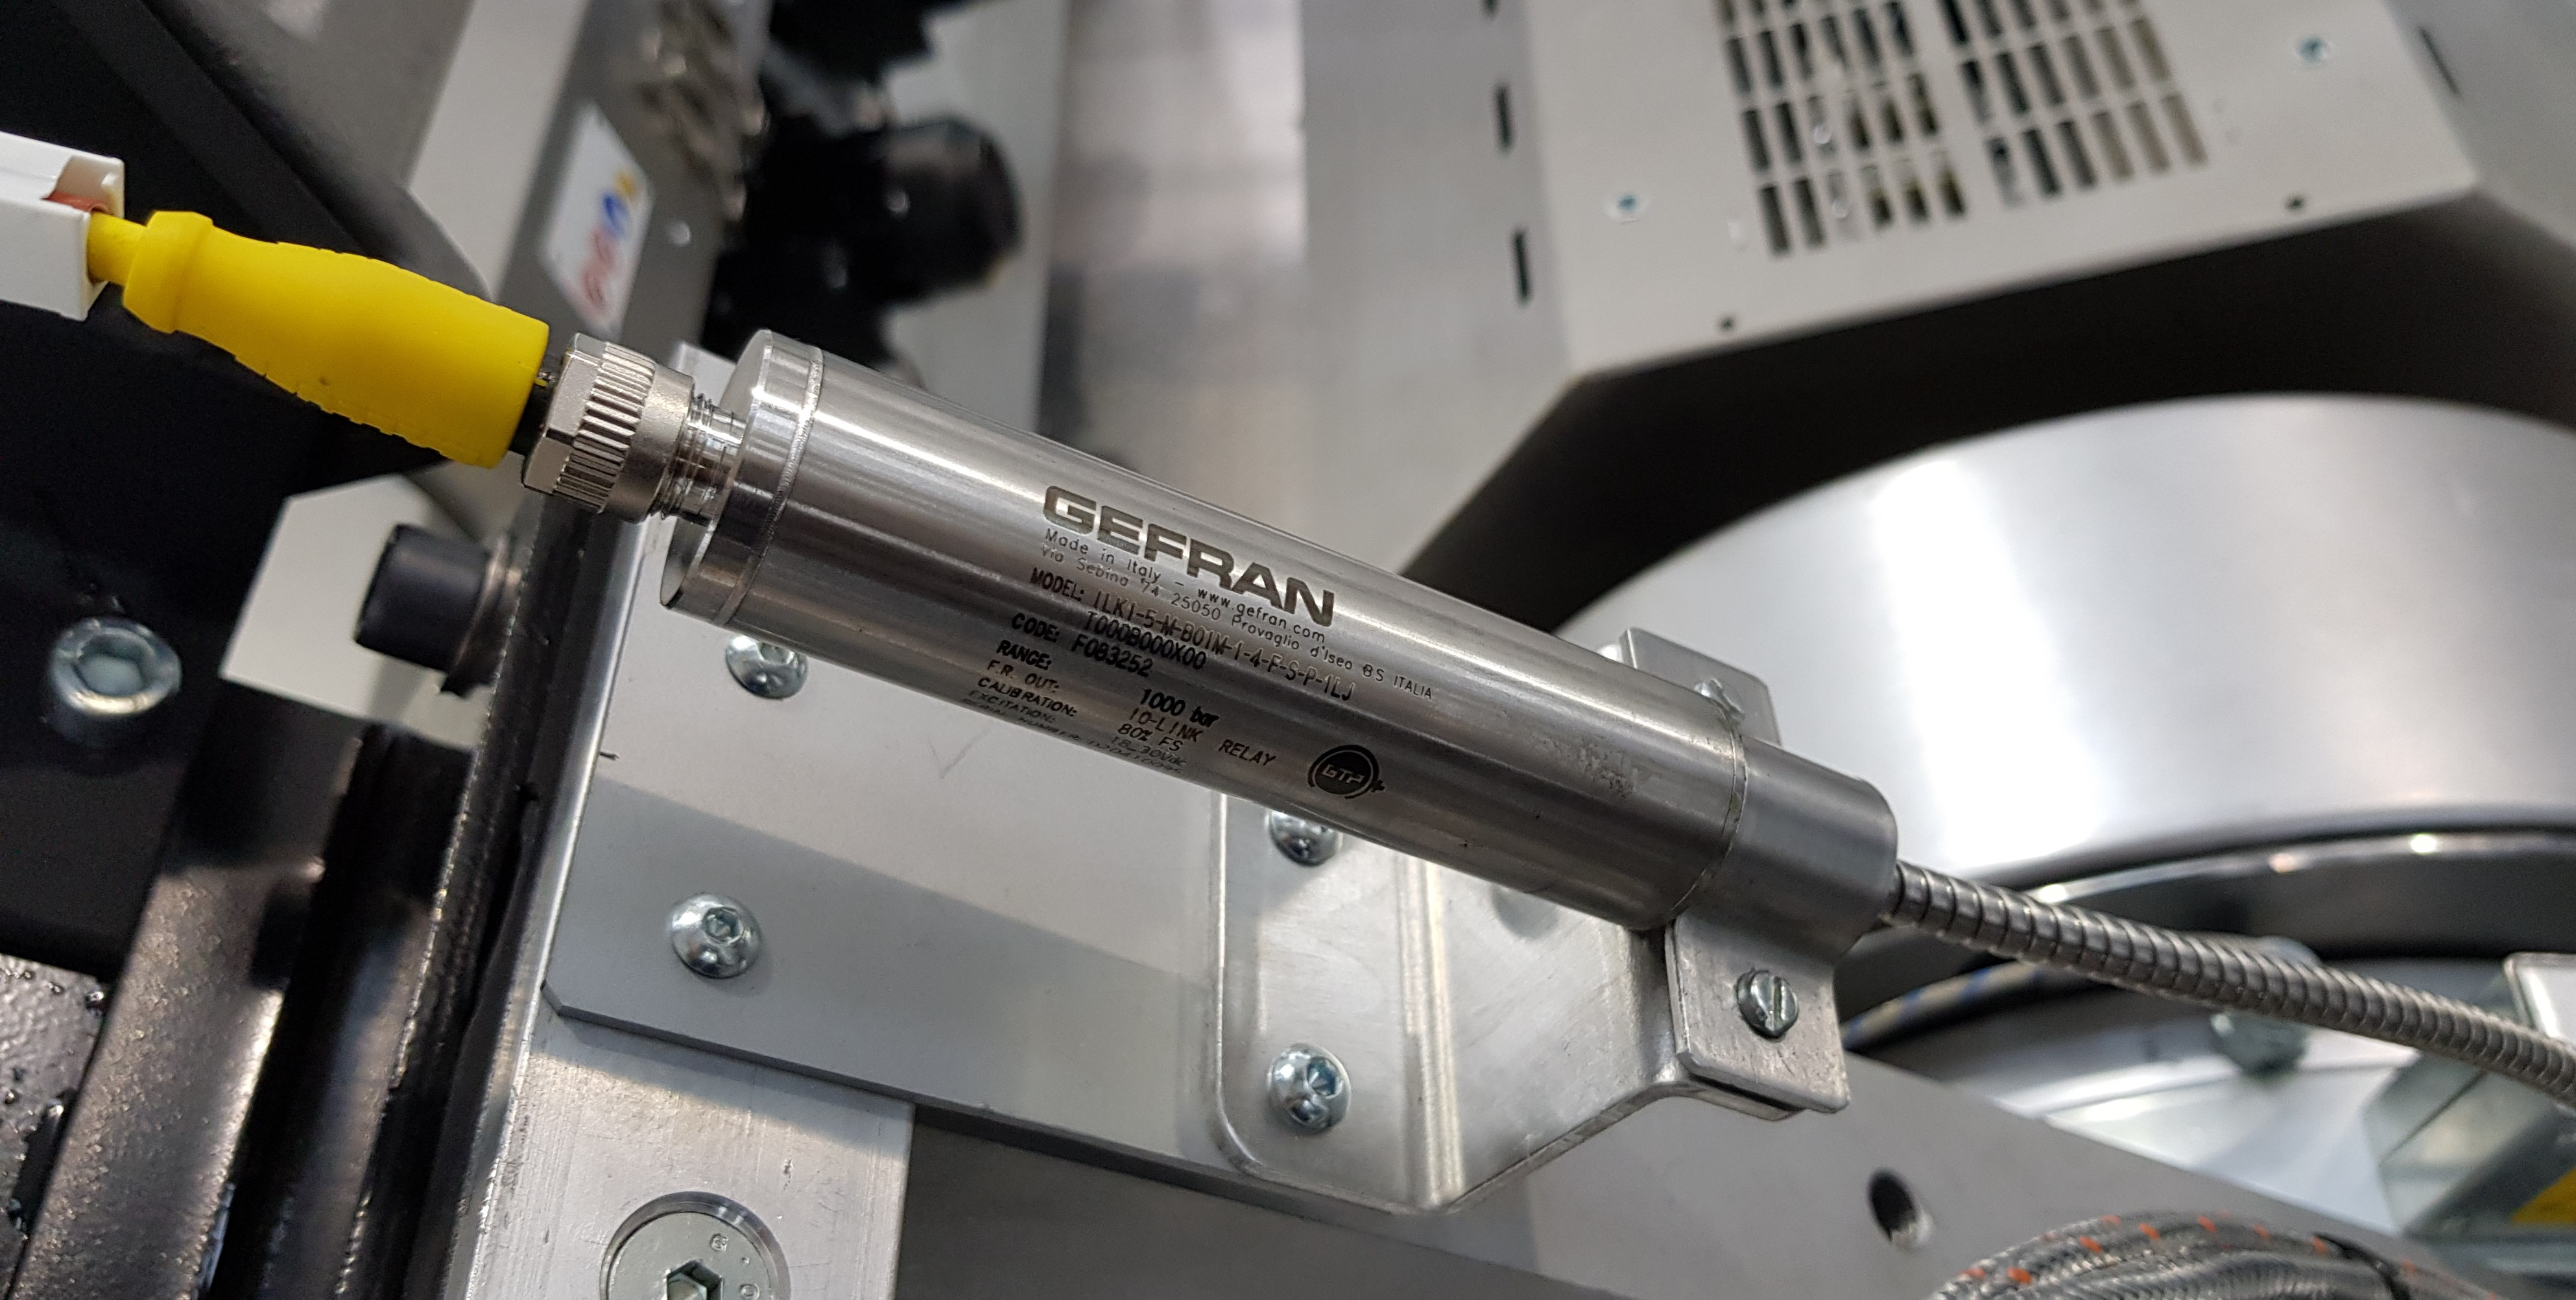 Gefran and Macchi: a valuable collaboration in the  blown film extrusion sector